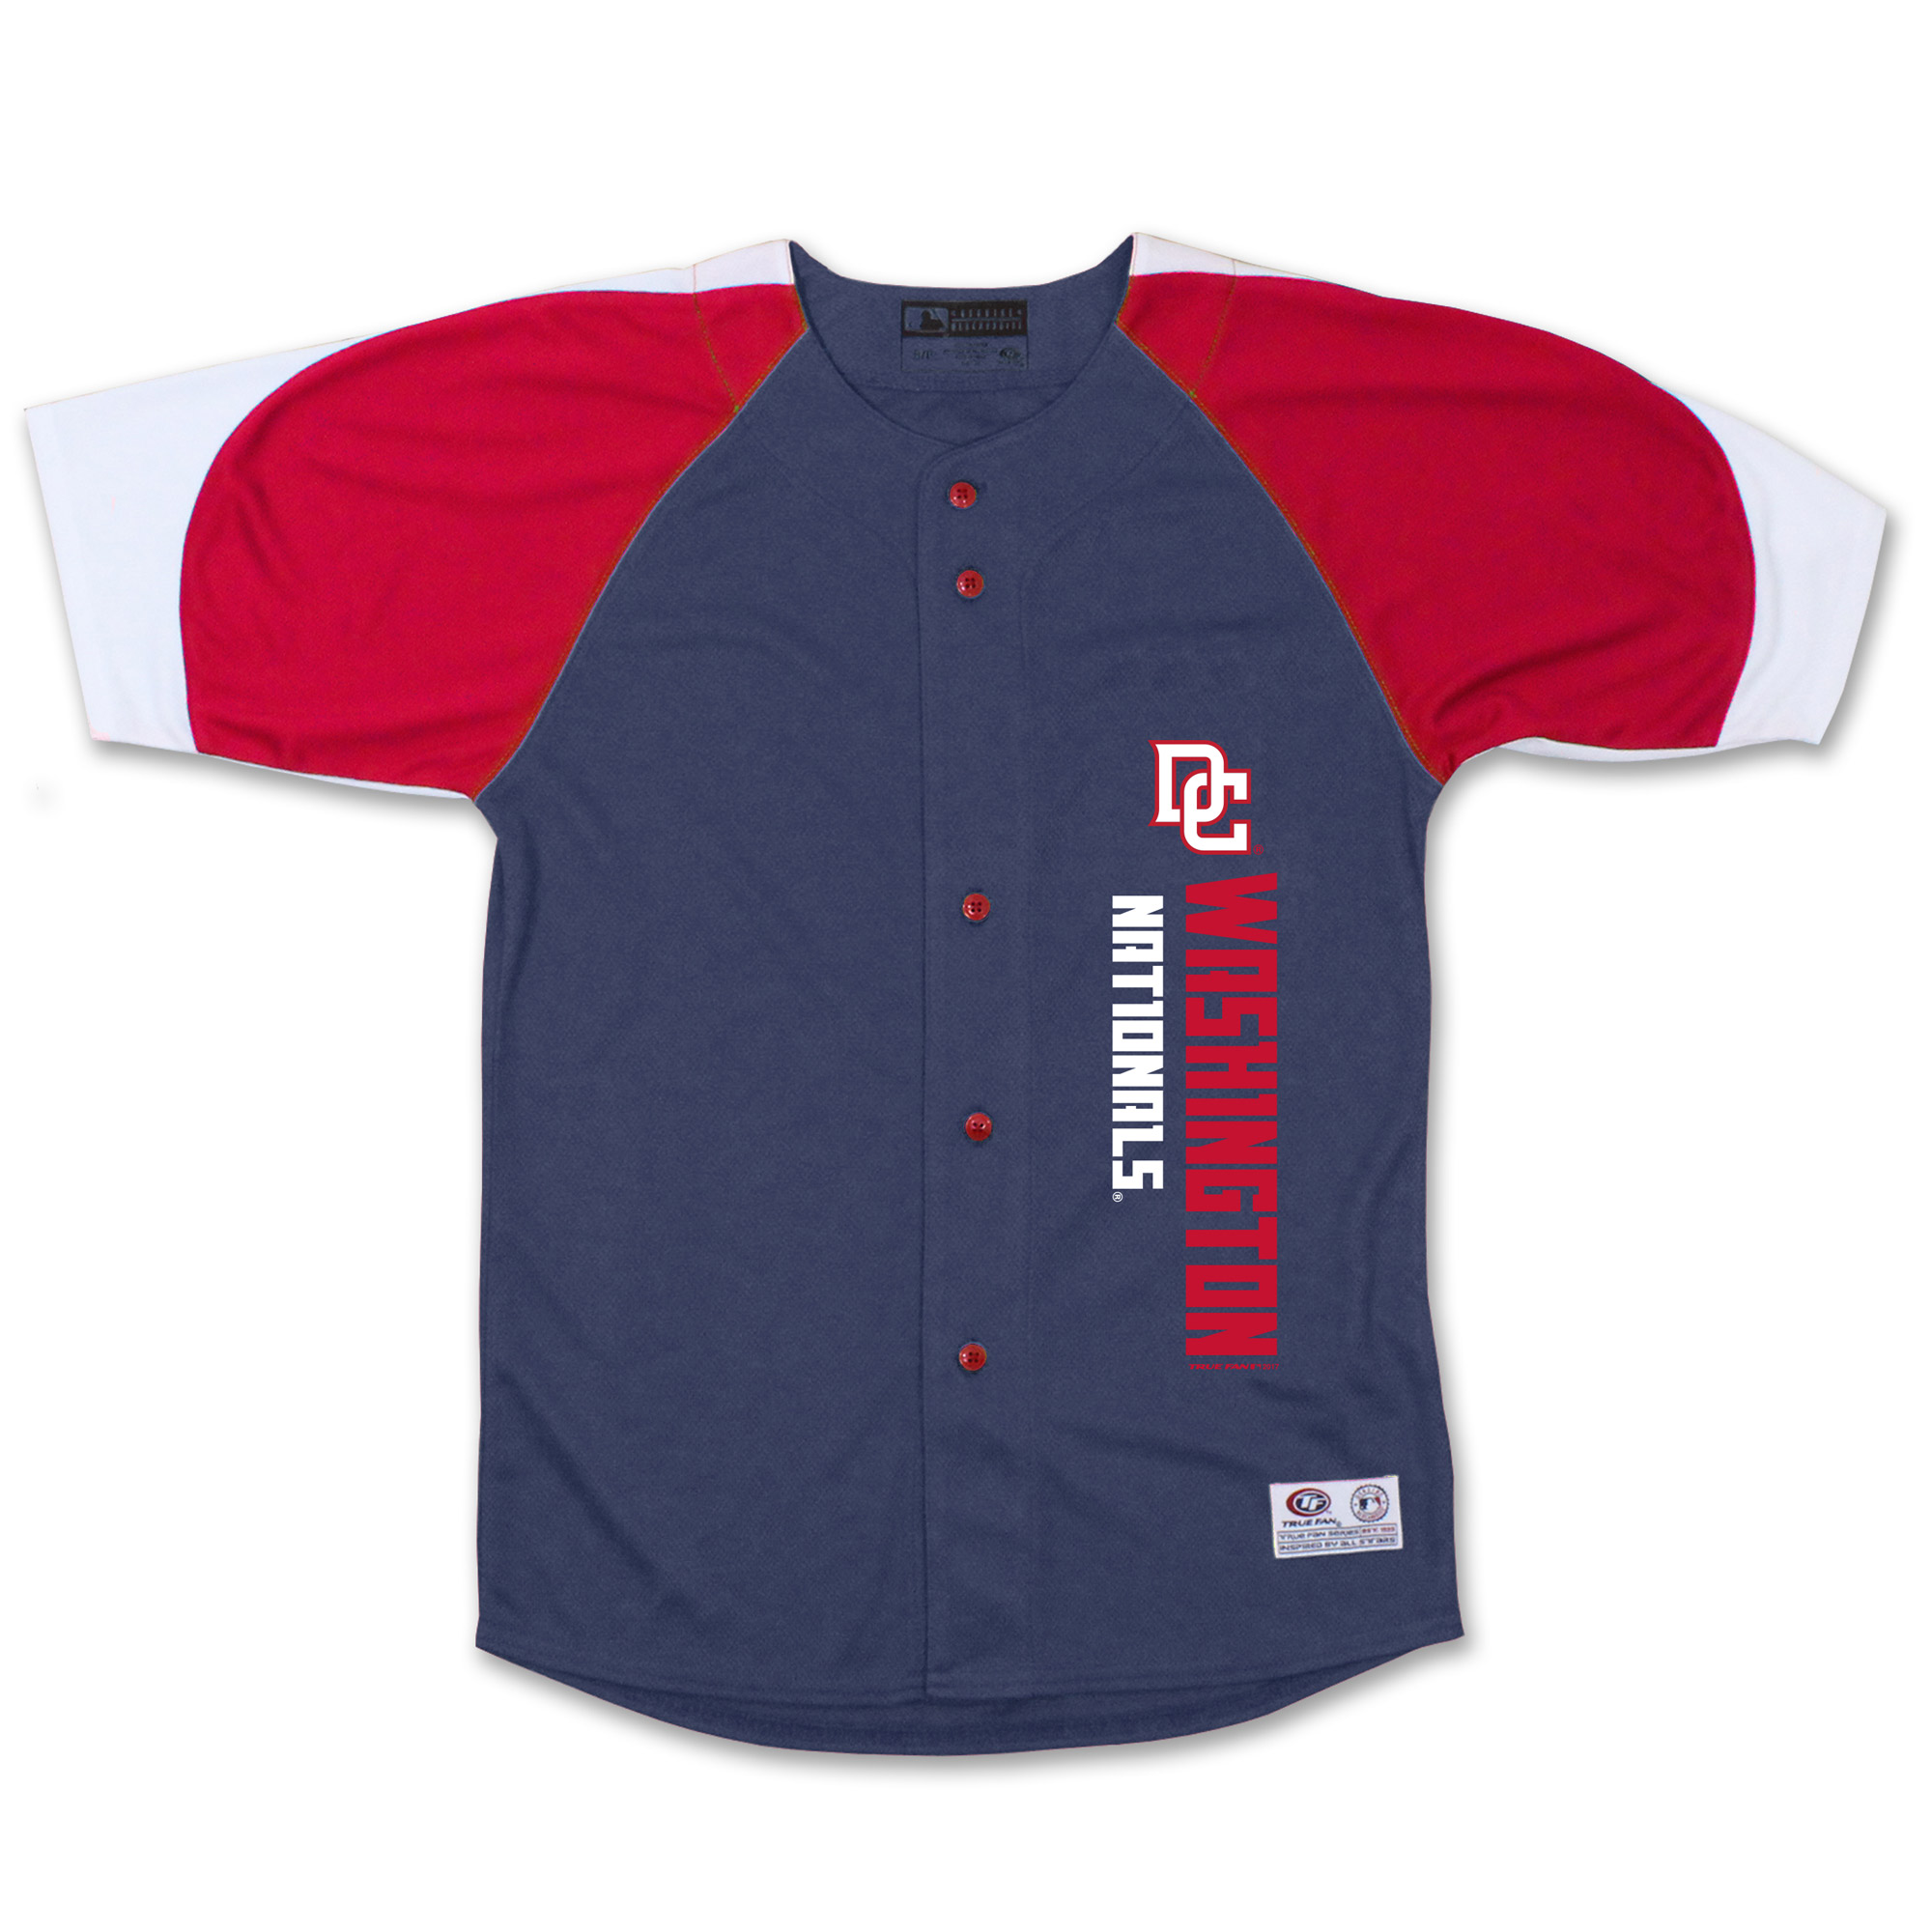 Washington Nationals Stitches Youth Vertical Jersey - Navy/Red